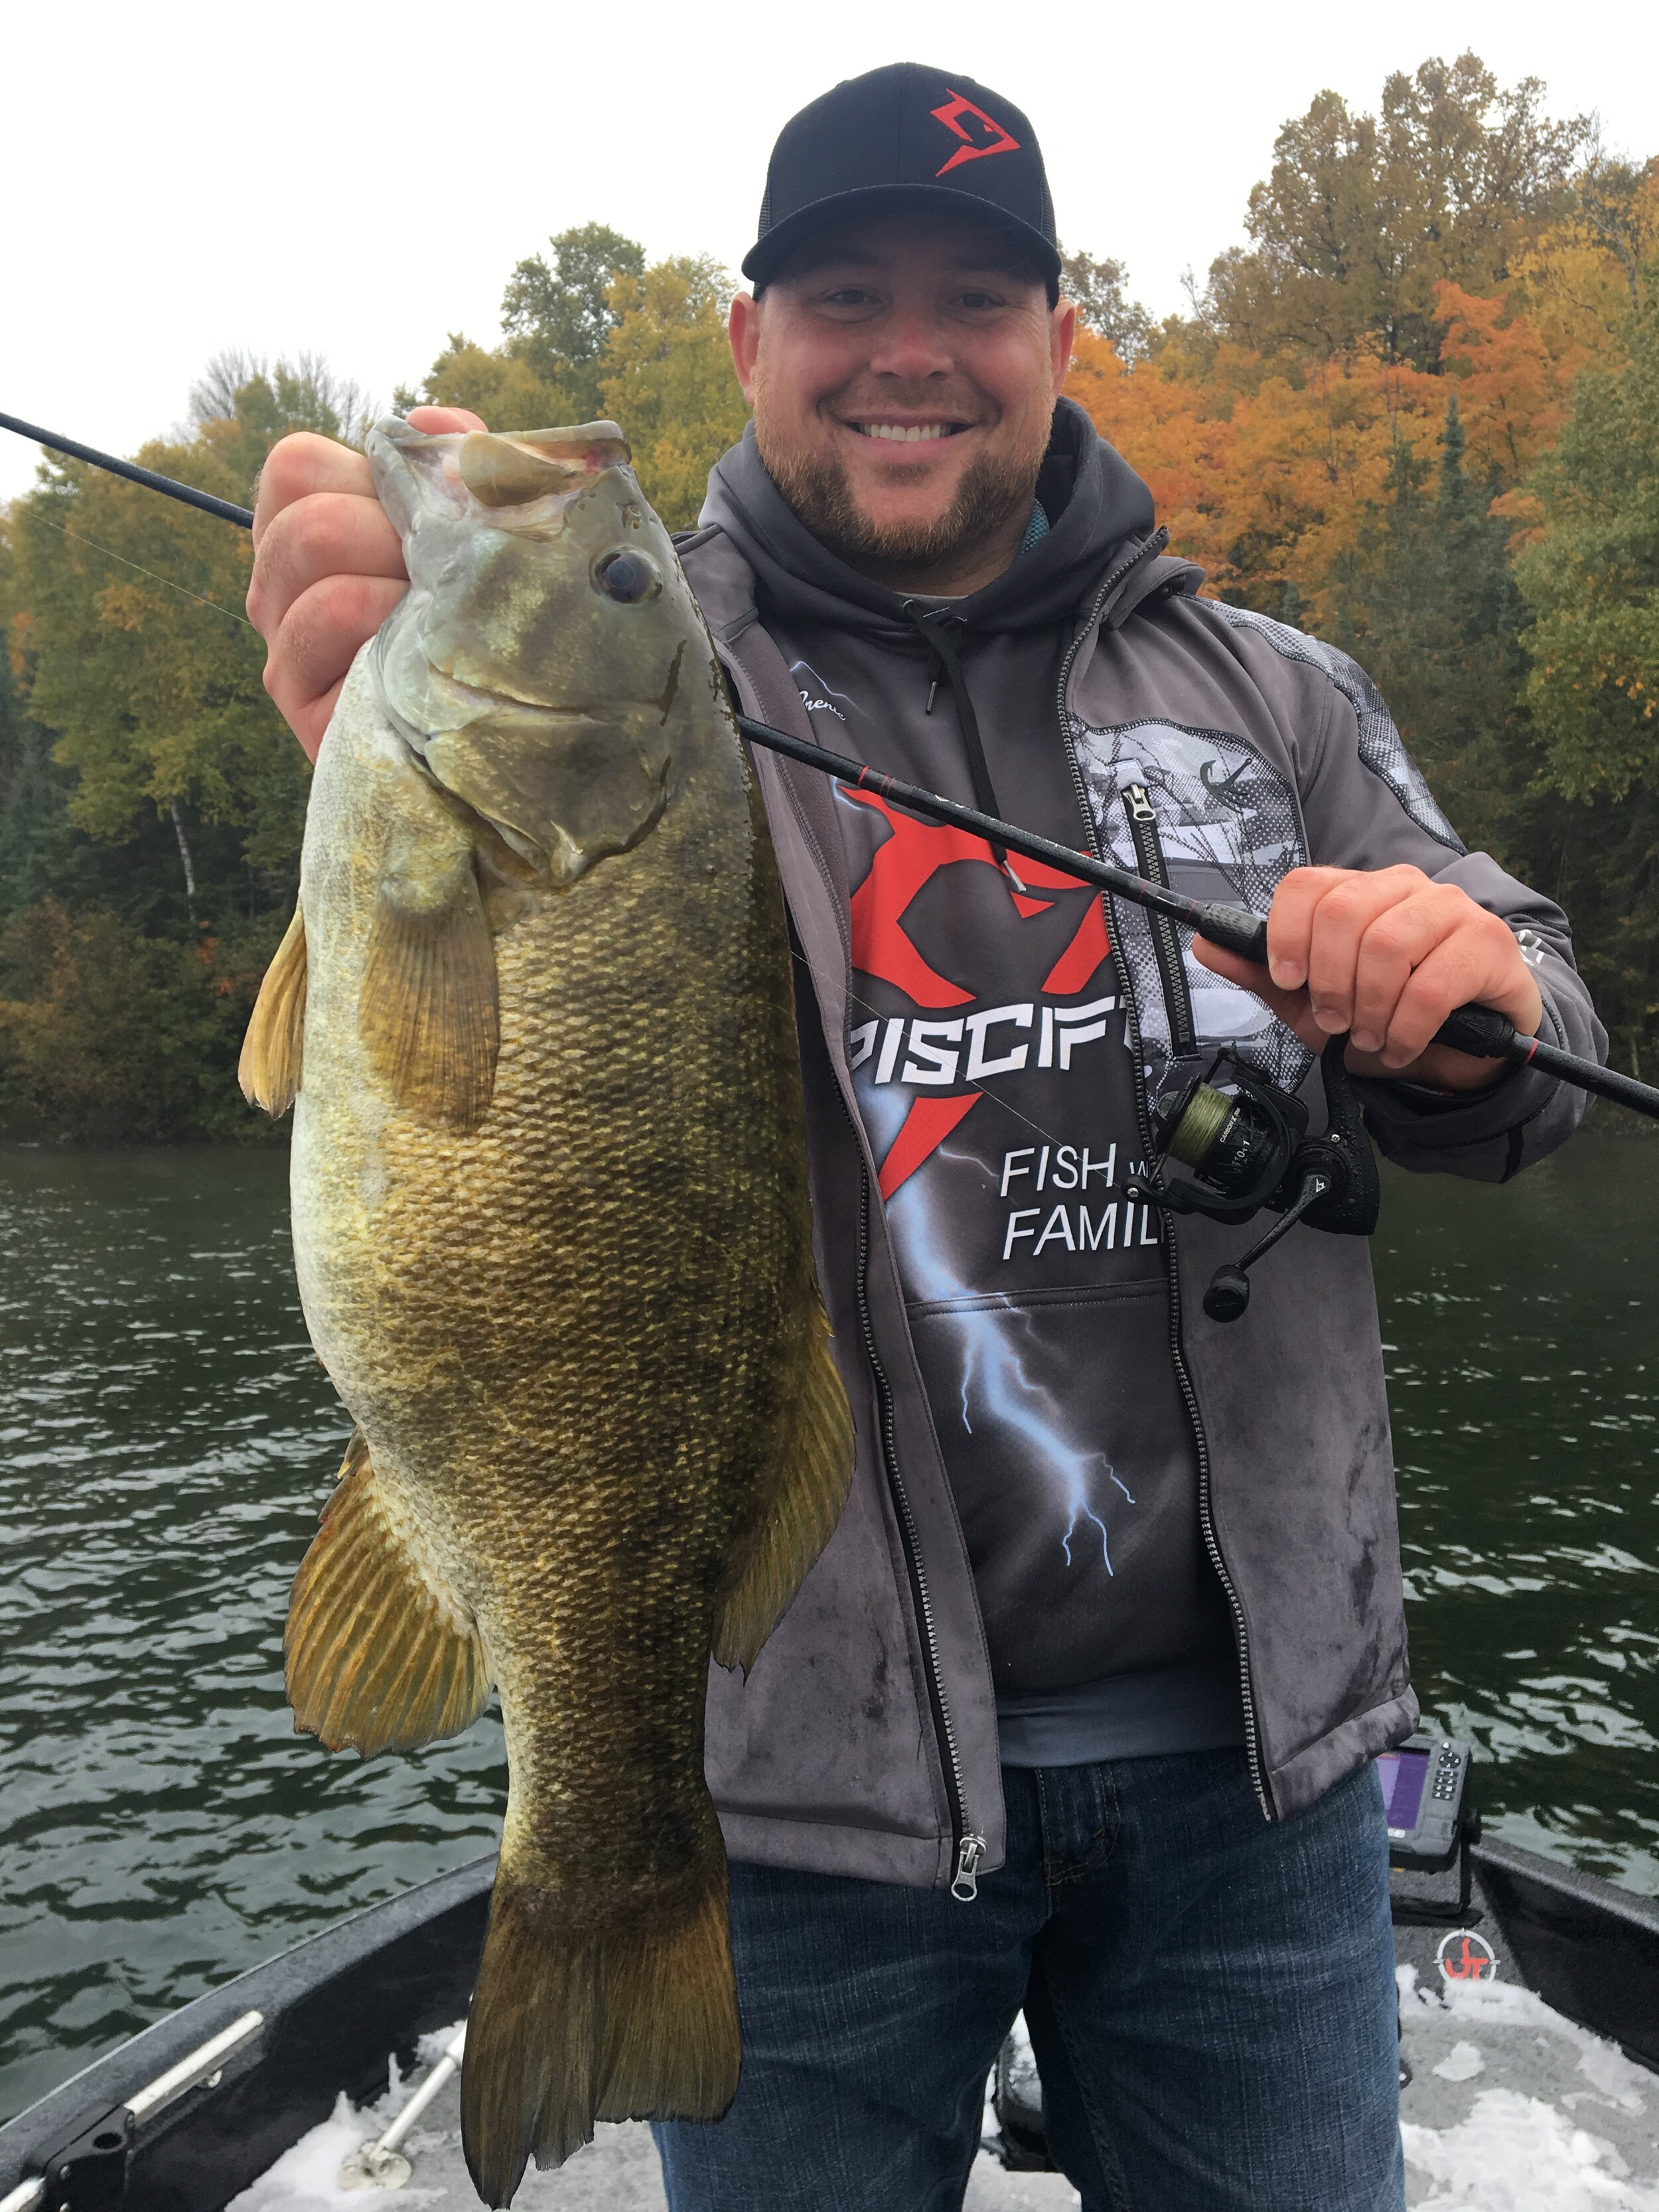 PISCIFUN American Director Jason Brenic with well scouted trophy smallmouth.  (Photo by Mike Roux)